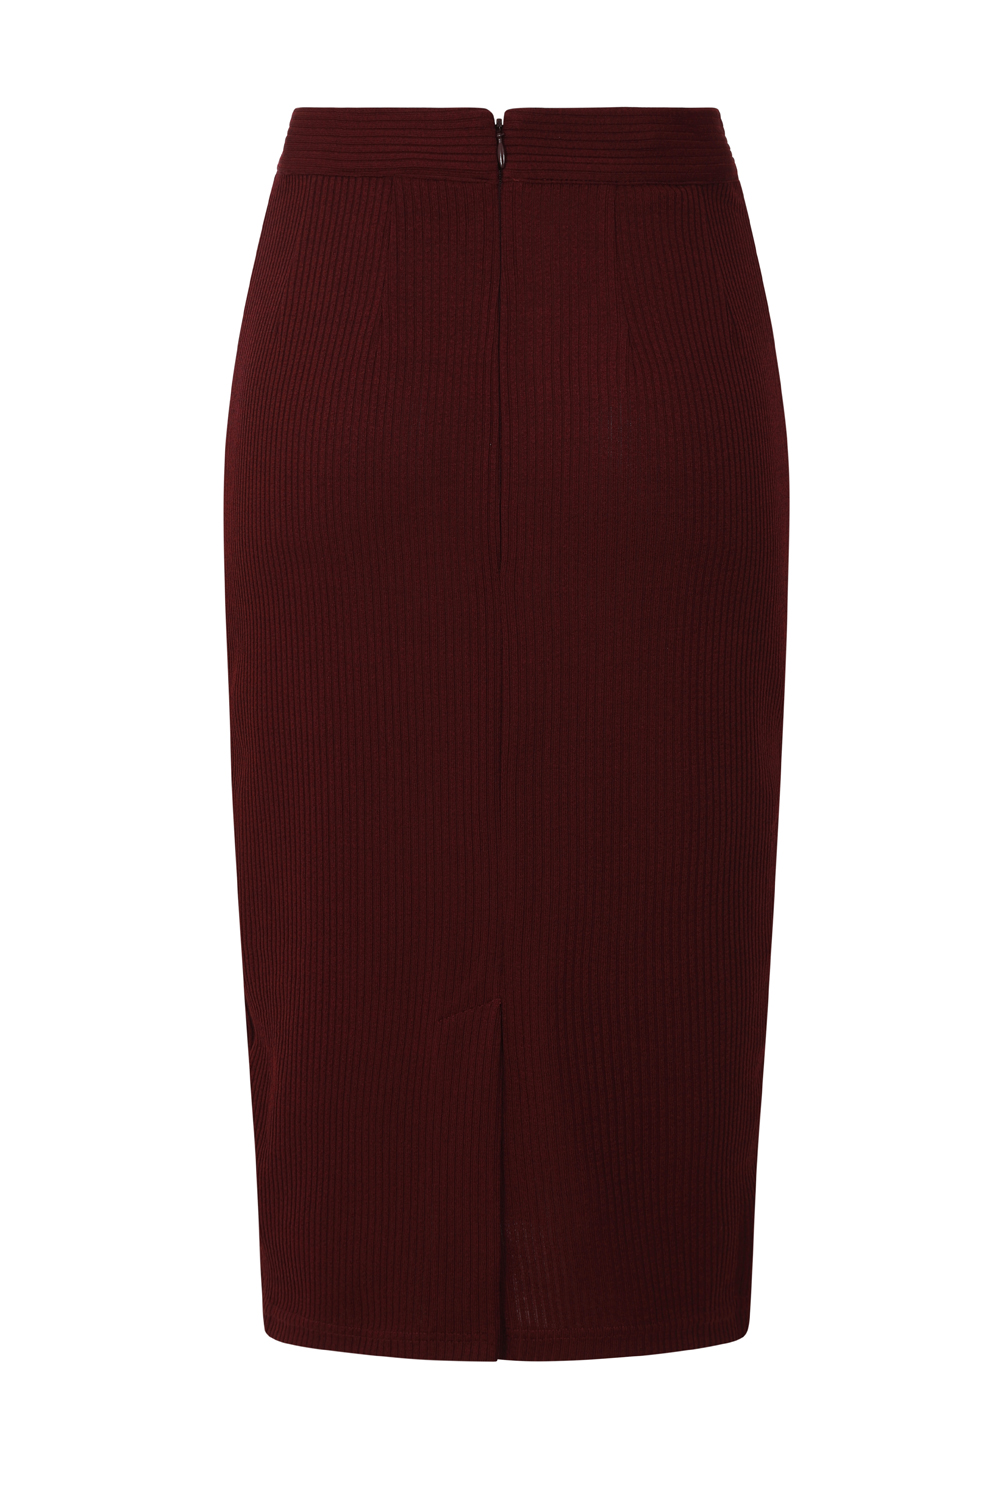 Sally Knitted Wiggle Skirt in Burgundy